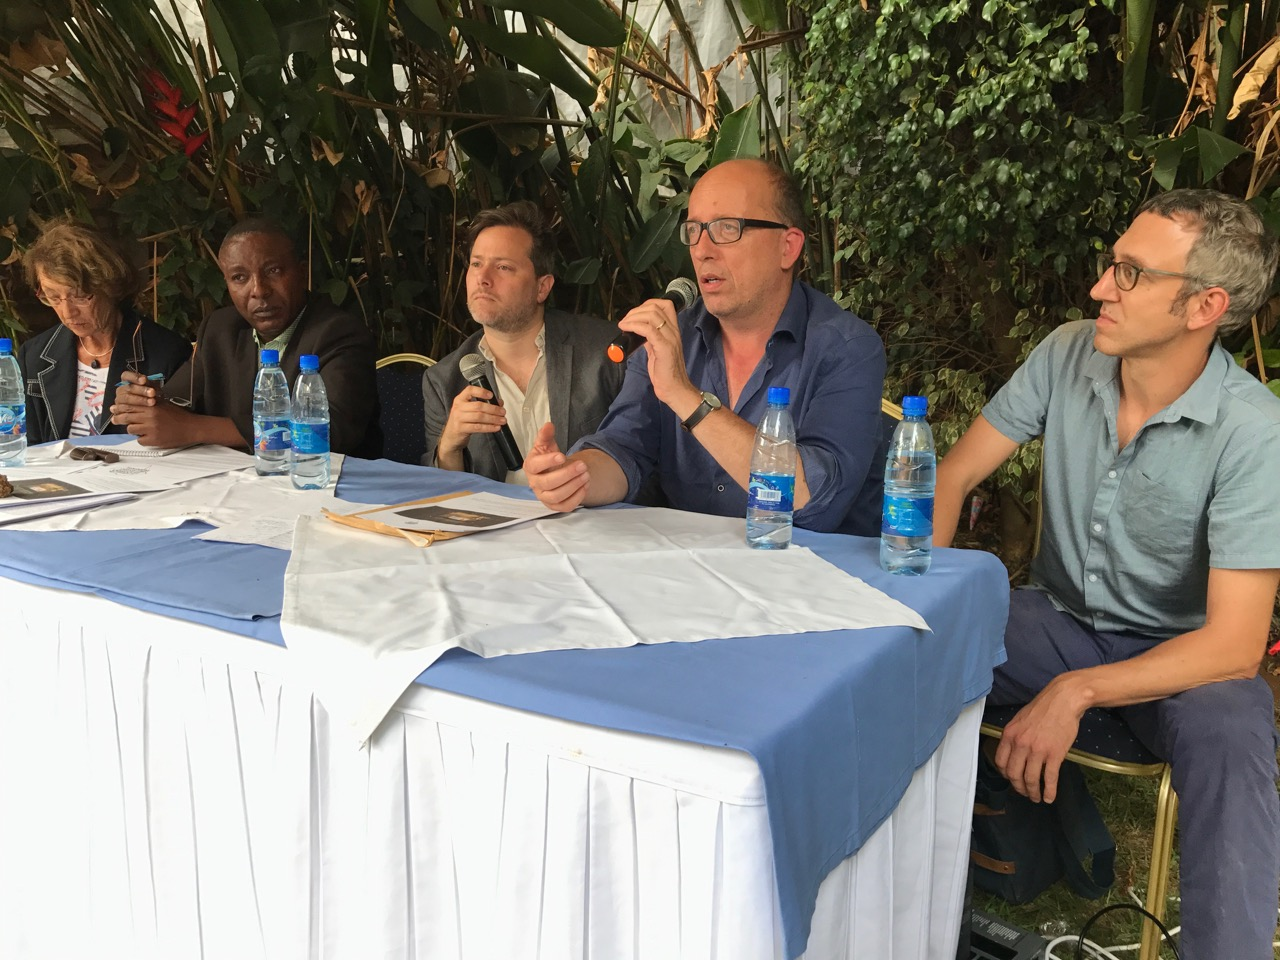 Belgian journalist Colette Braeckman, lawyer Maitre Bisimwa, director Milo Rau and the producers Arne Birkenstock and Olivier Zobrist during a press conference in Bukavu. (@2017 The Congo Tribunal / Patricia Corniciuc)